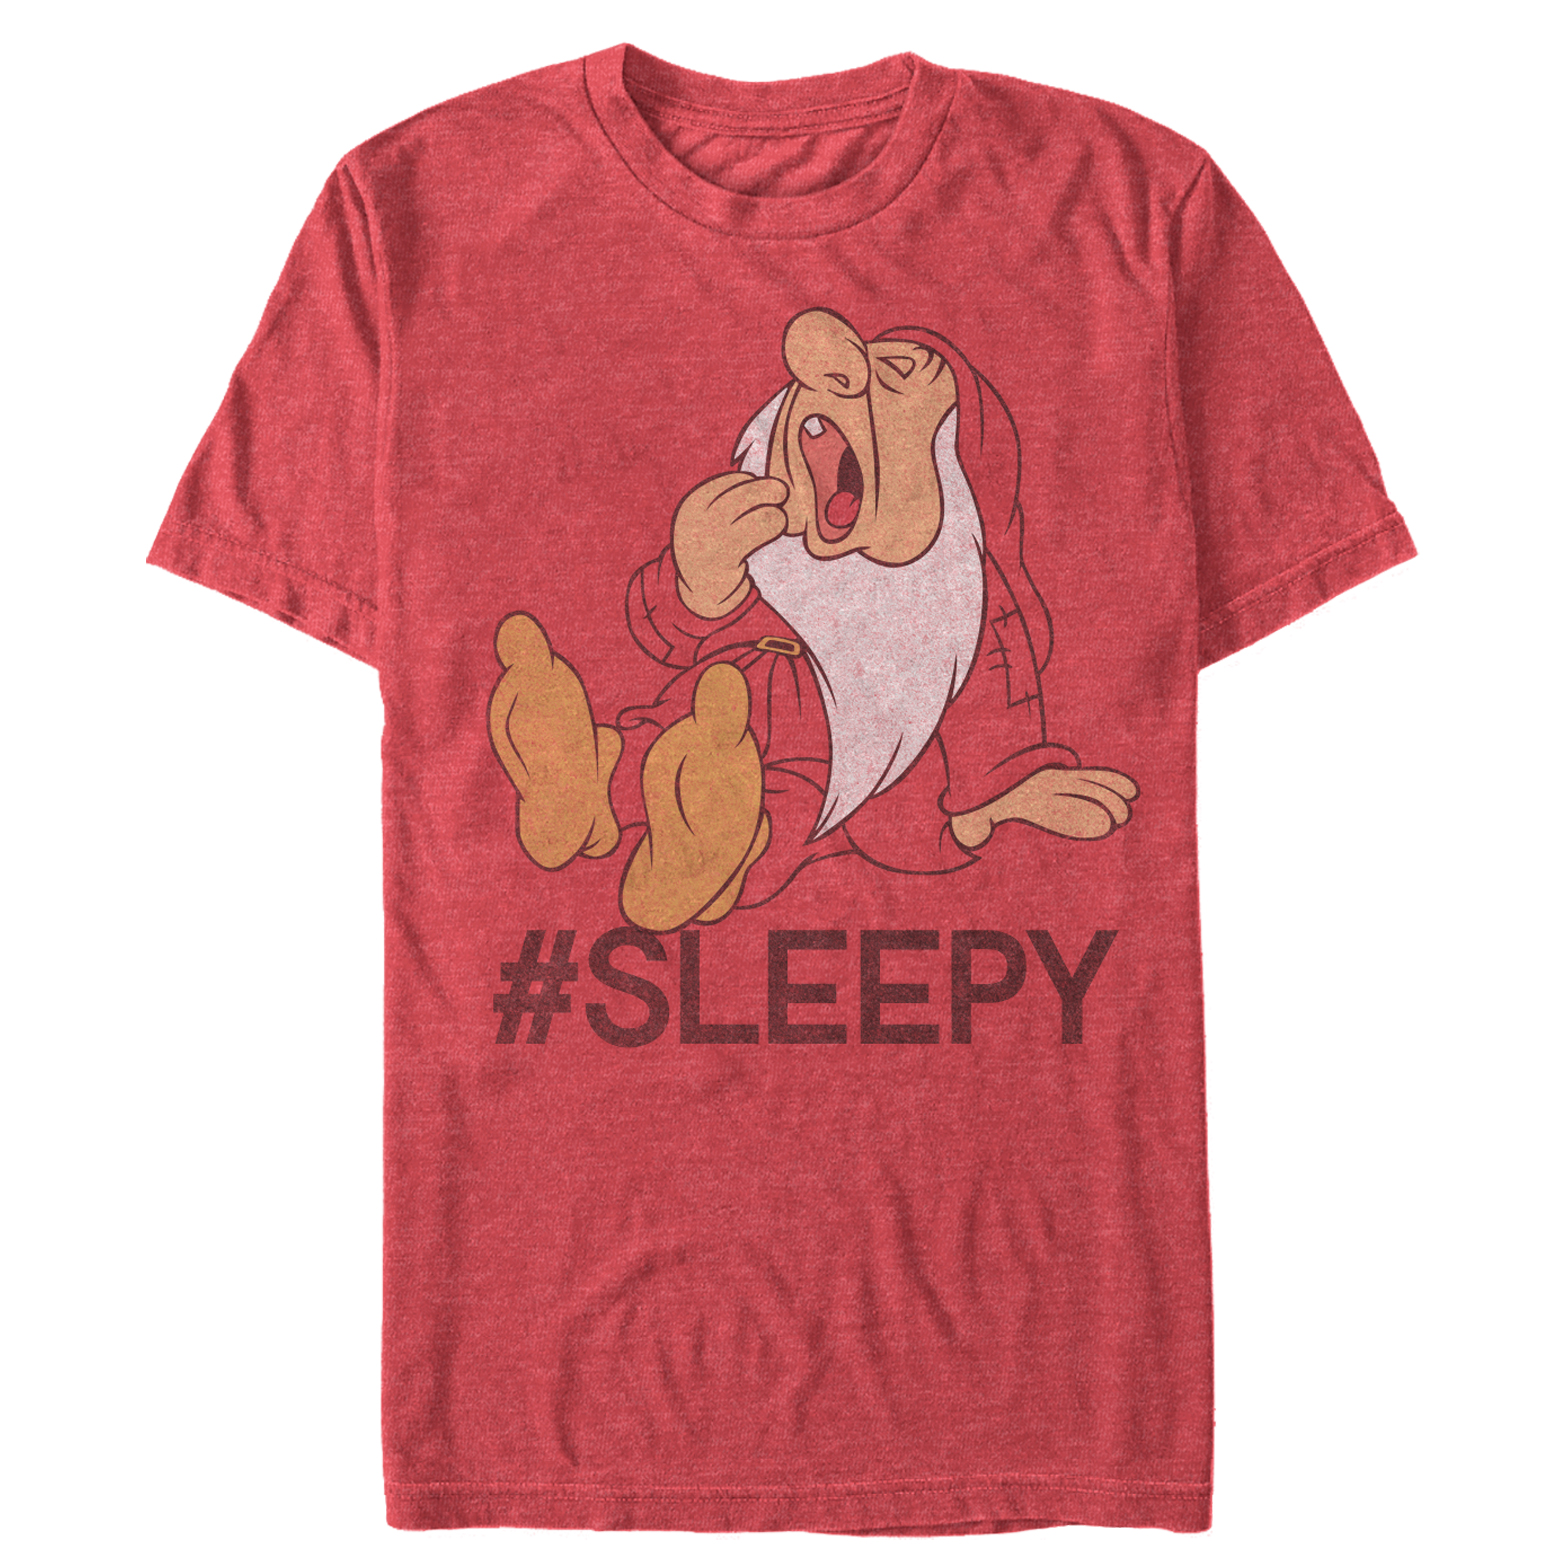 Snow White and the Seven Dwarves Men's #Sleepy T-Shirt